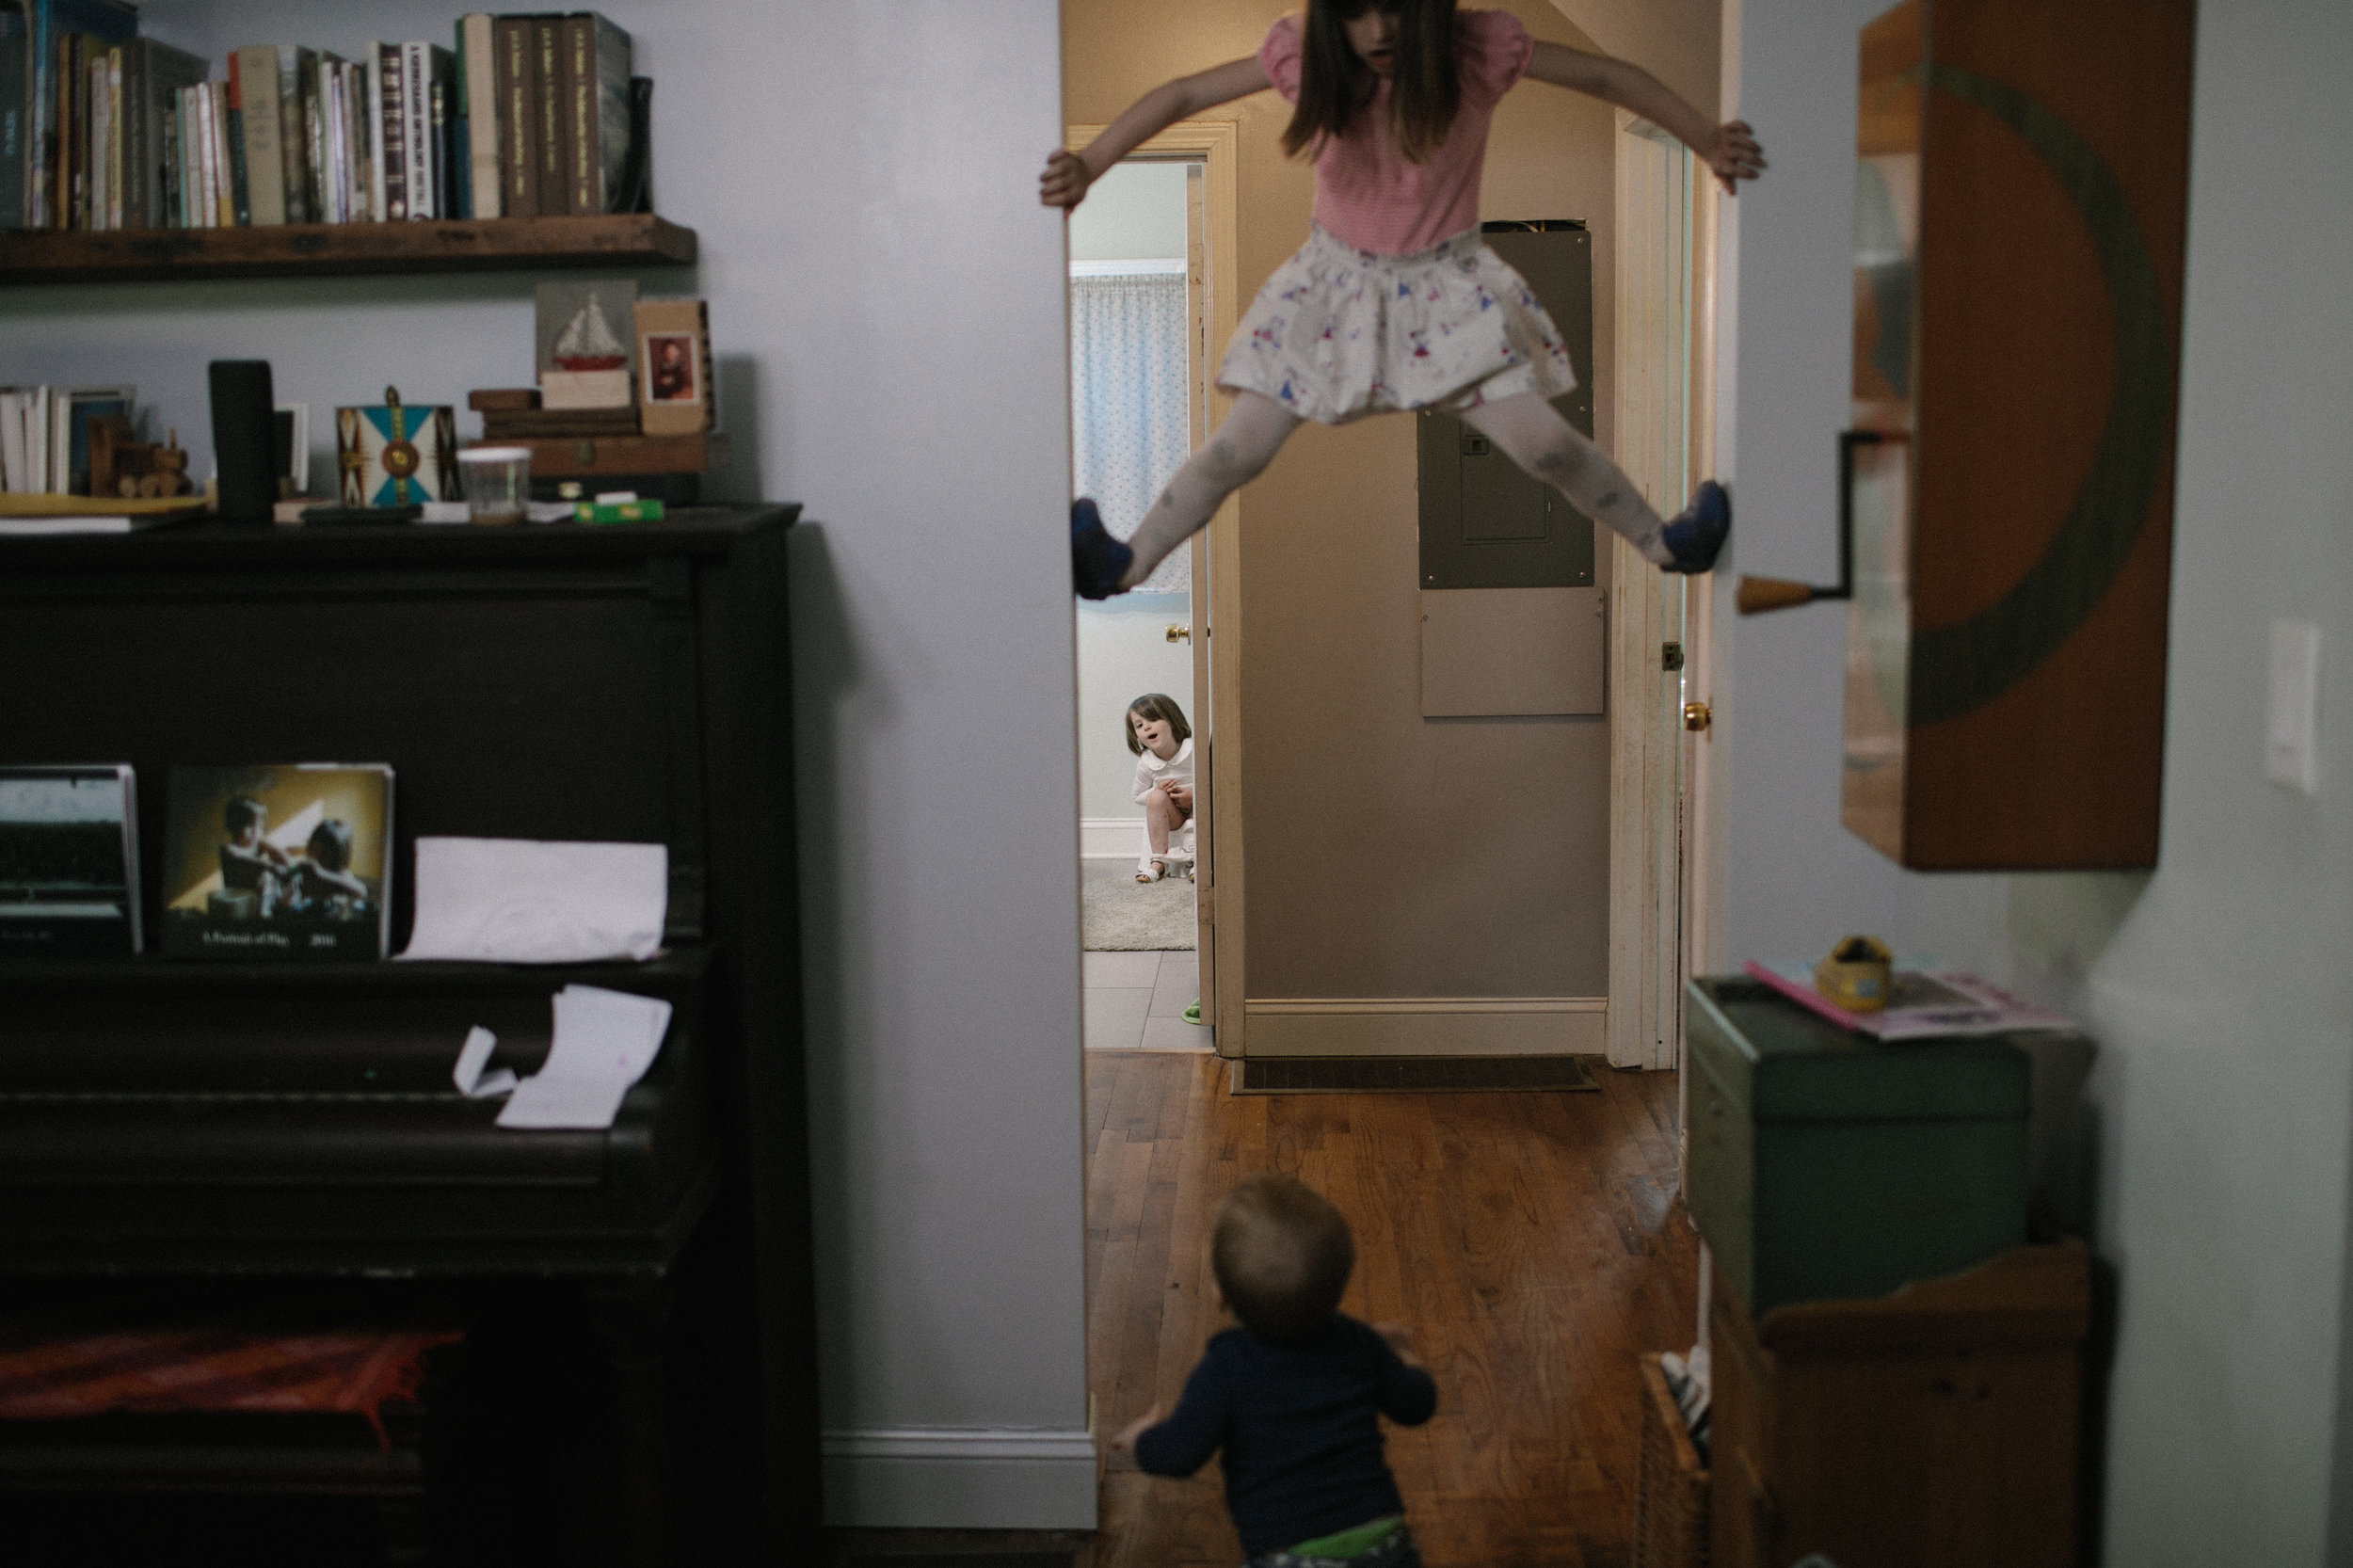 a child climbs a doorway while two other children watch